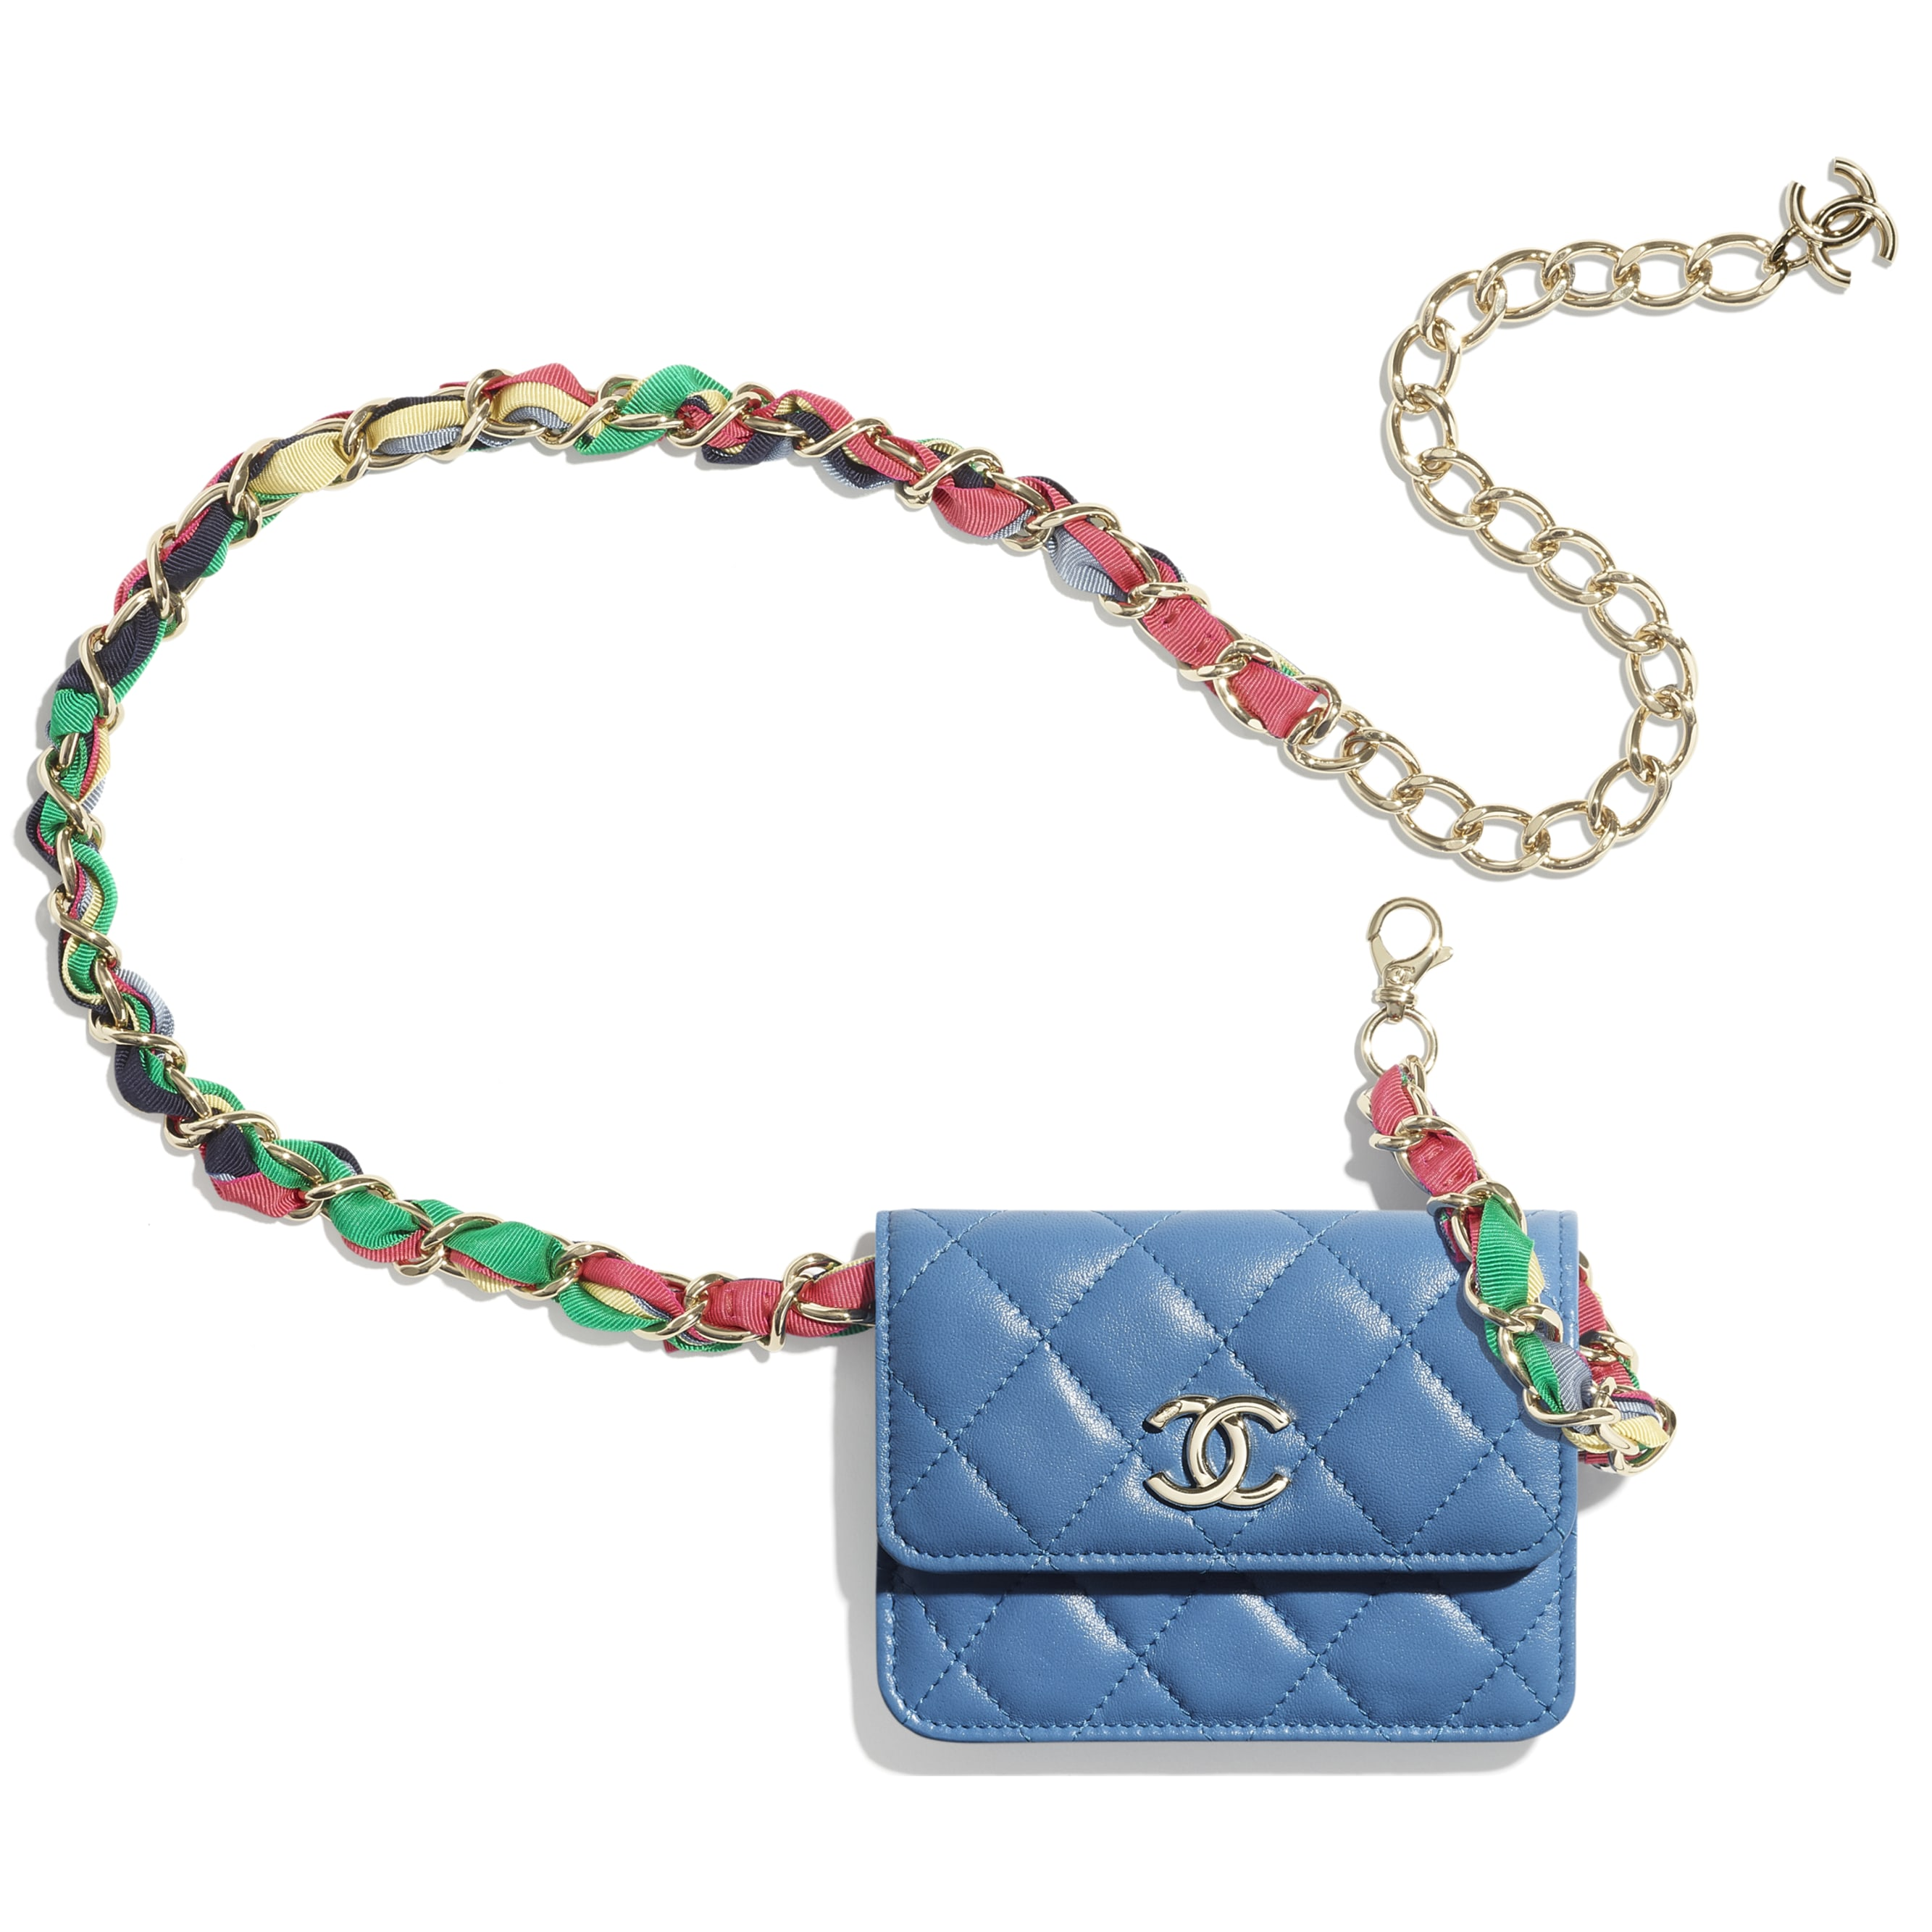 Belt Bag - Blue - Shiny Lambskin, Ribbon & Gold-Tone Metal - CHANEL - Other view - see standard sized version